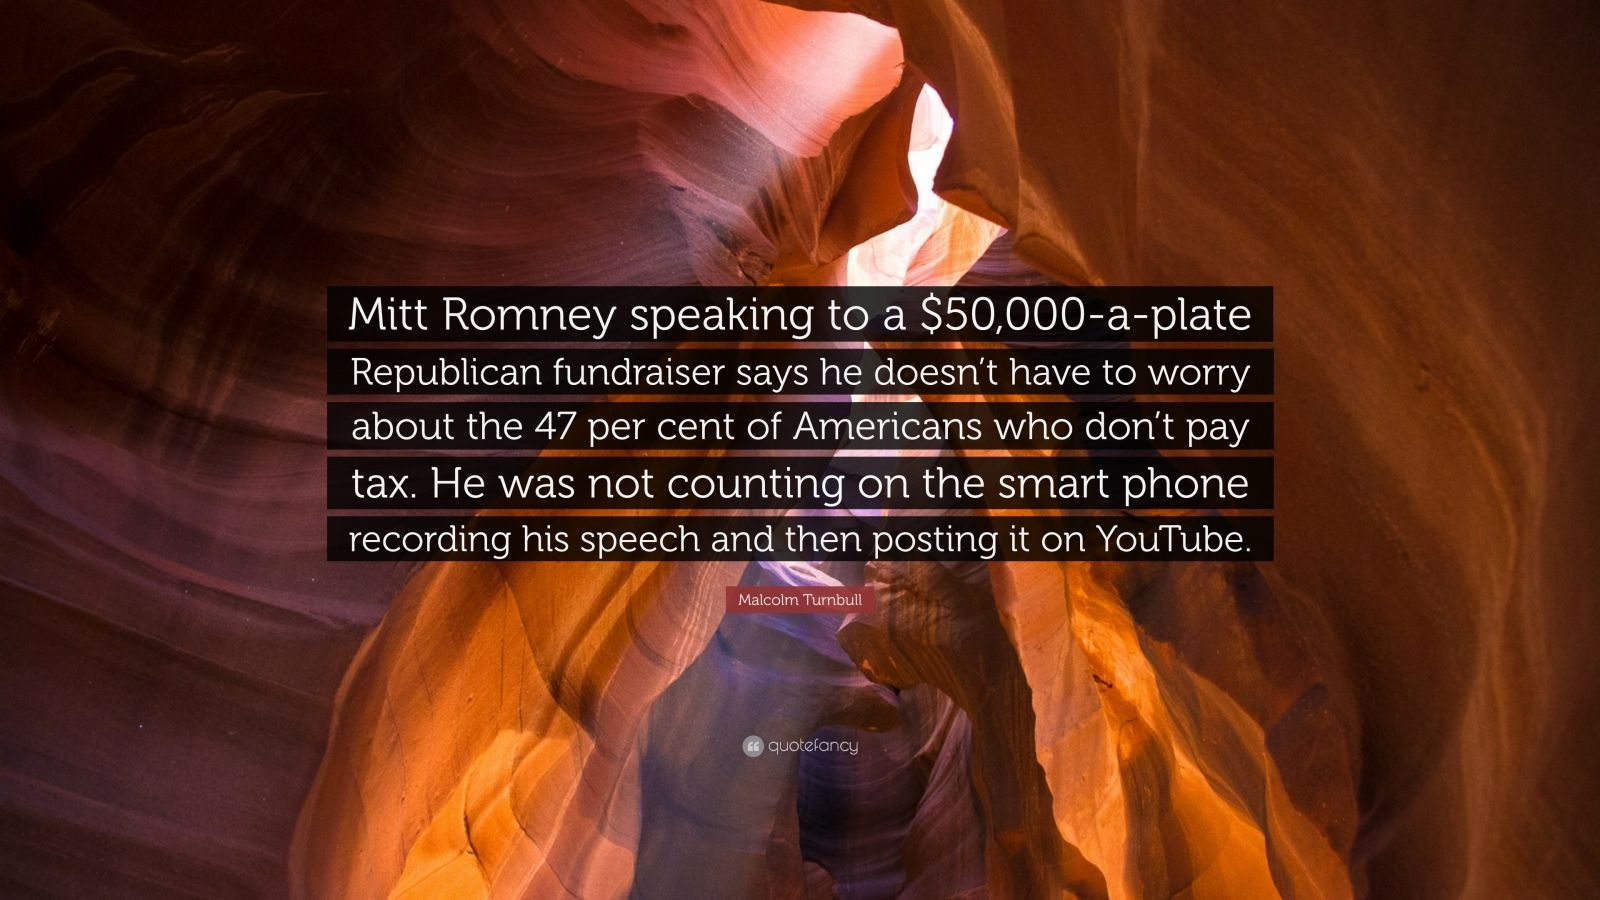 """Malcolm Turnbull Quote: """"Mitt Romney speaking to a $50,000-a-plate Republican fundraiser says he doesn't have to worry about the 47 per cent of Americans who don't pay tax. He was not counting on the smart phone recording his speech and then posting it on YouTube."""""""